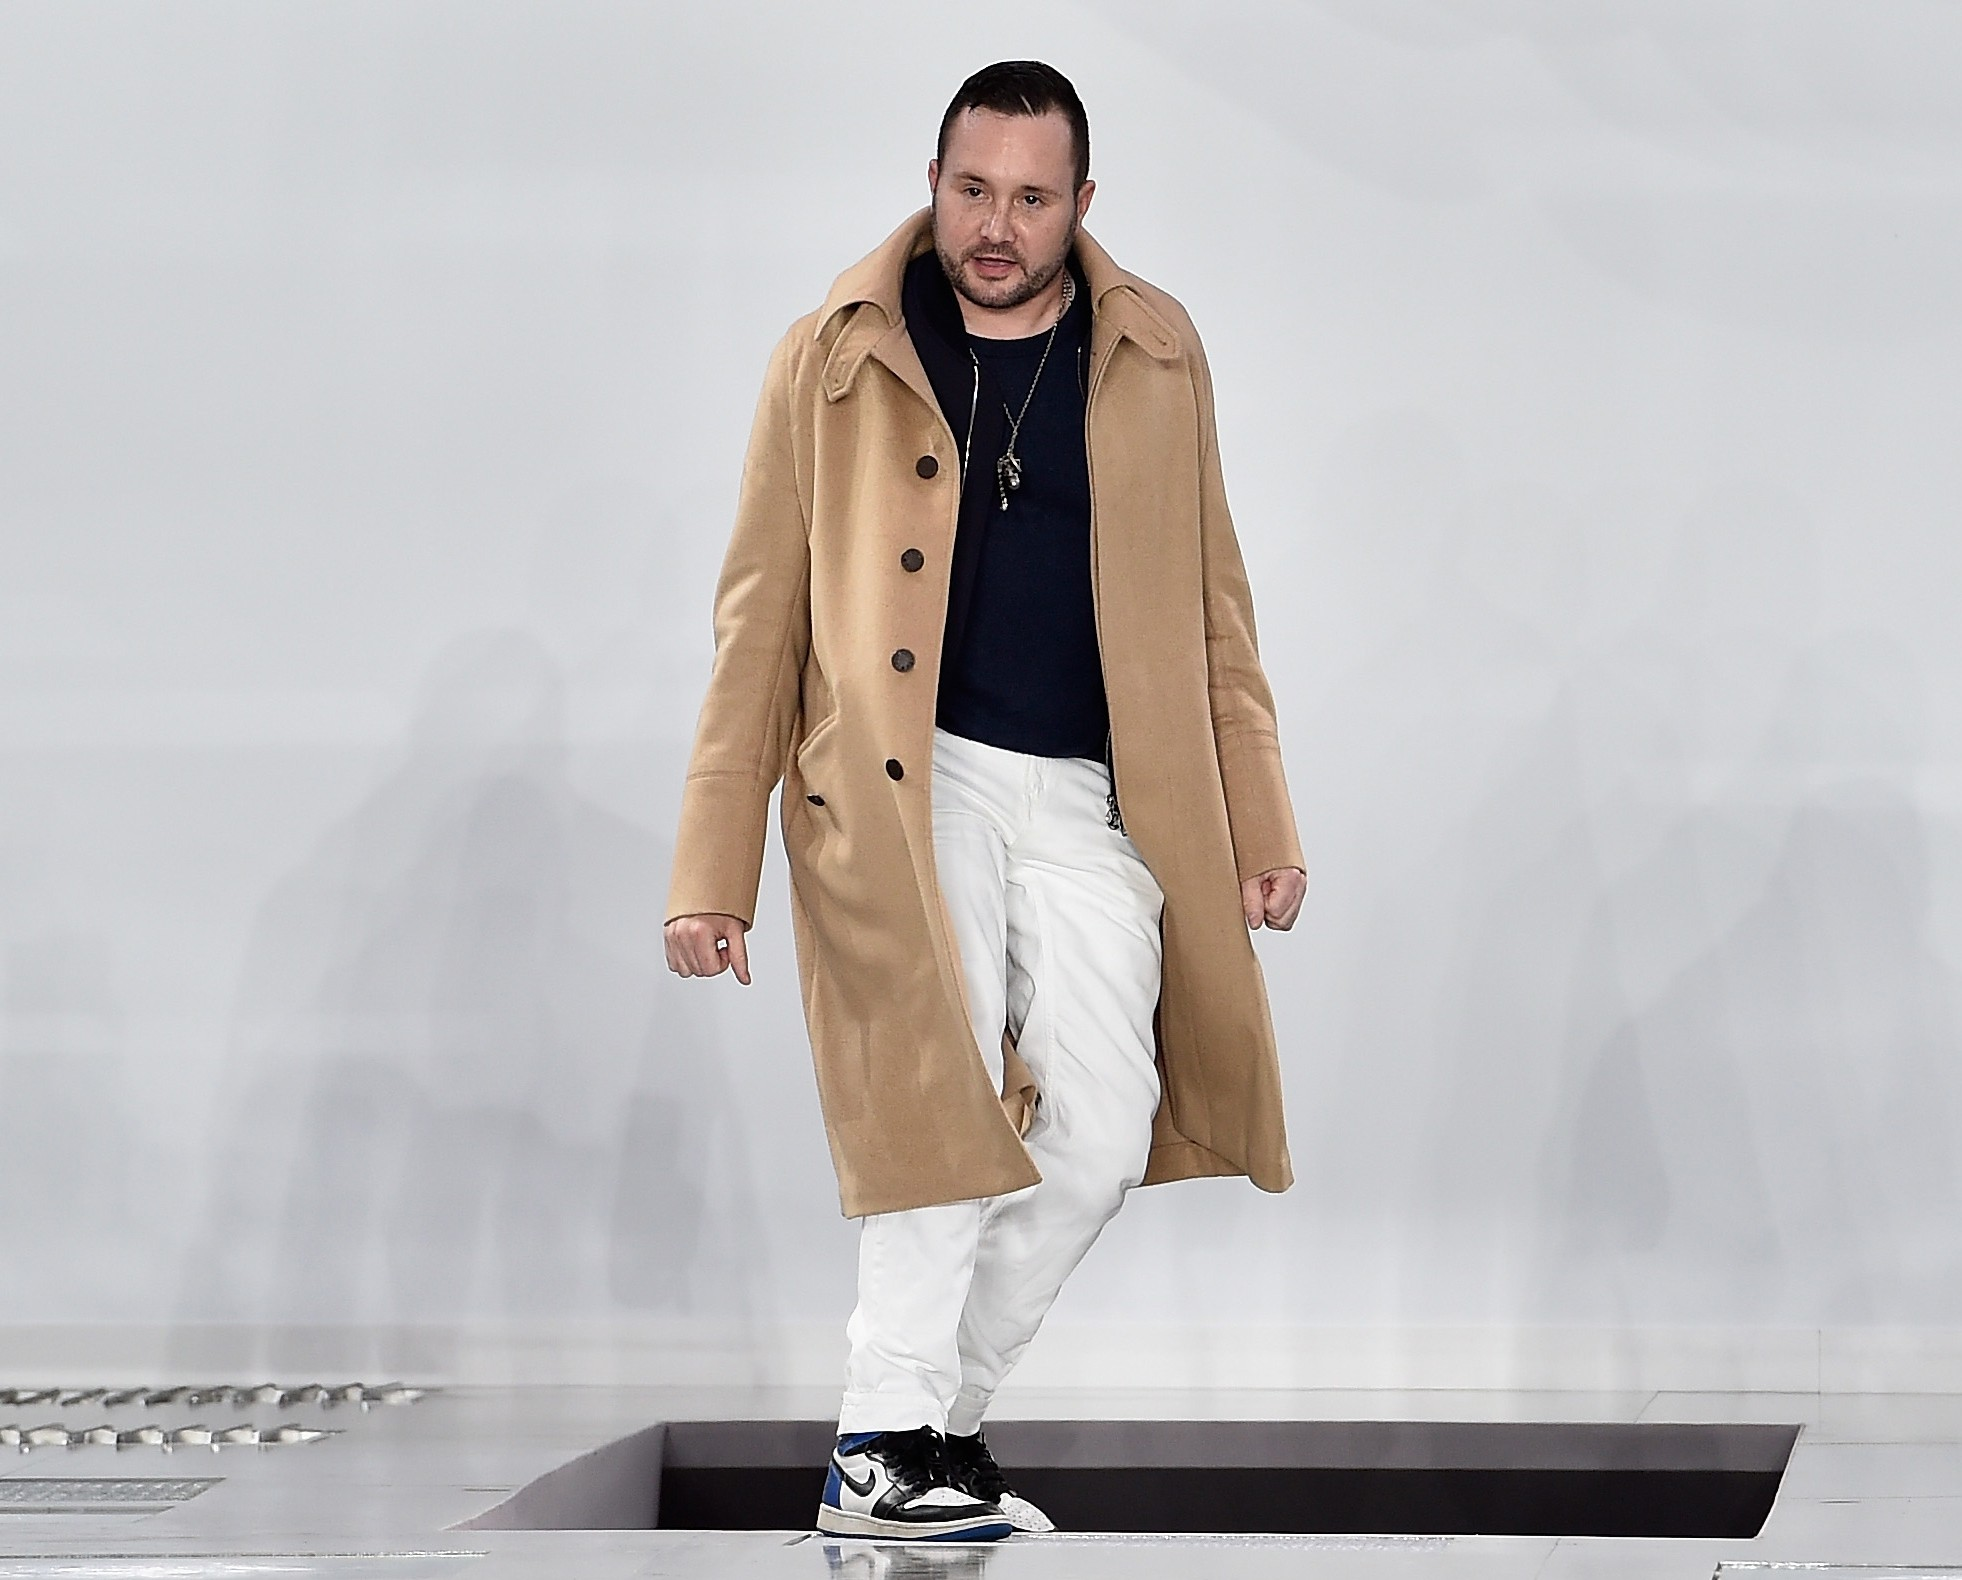 Kim Jones é homenageado pelo British Fashion Council como ponta de lança da indústria (Foto: Getty Images)